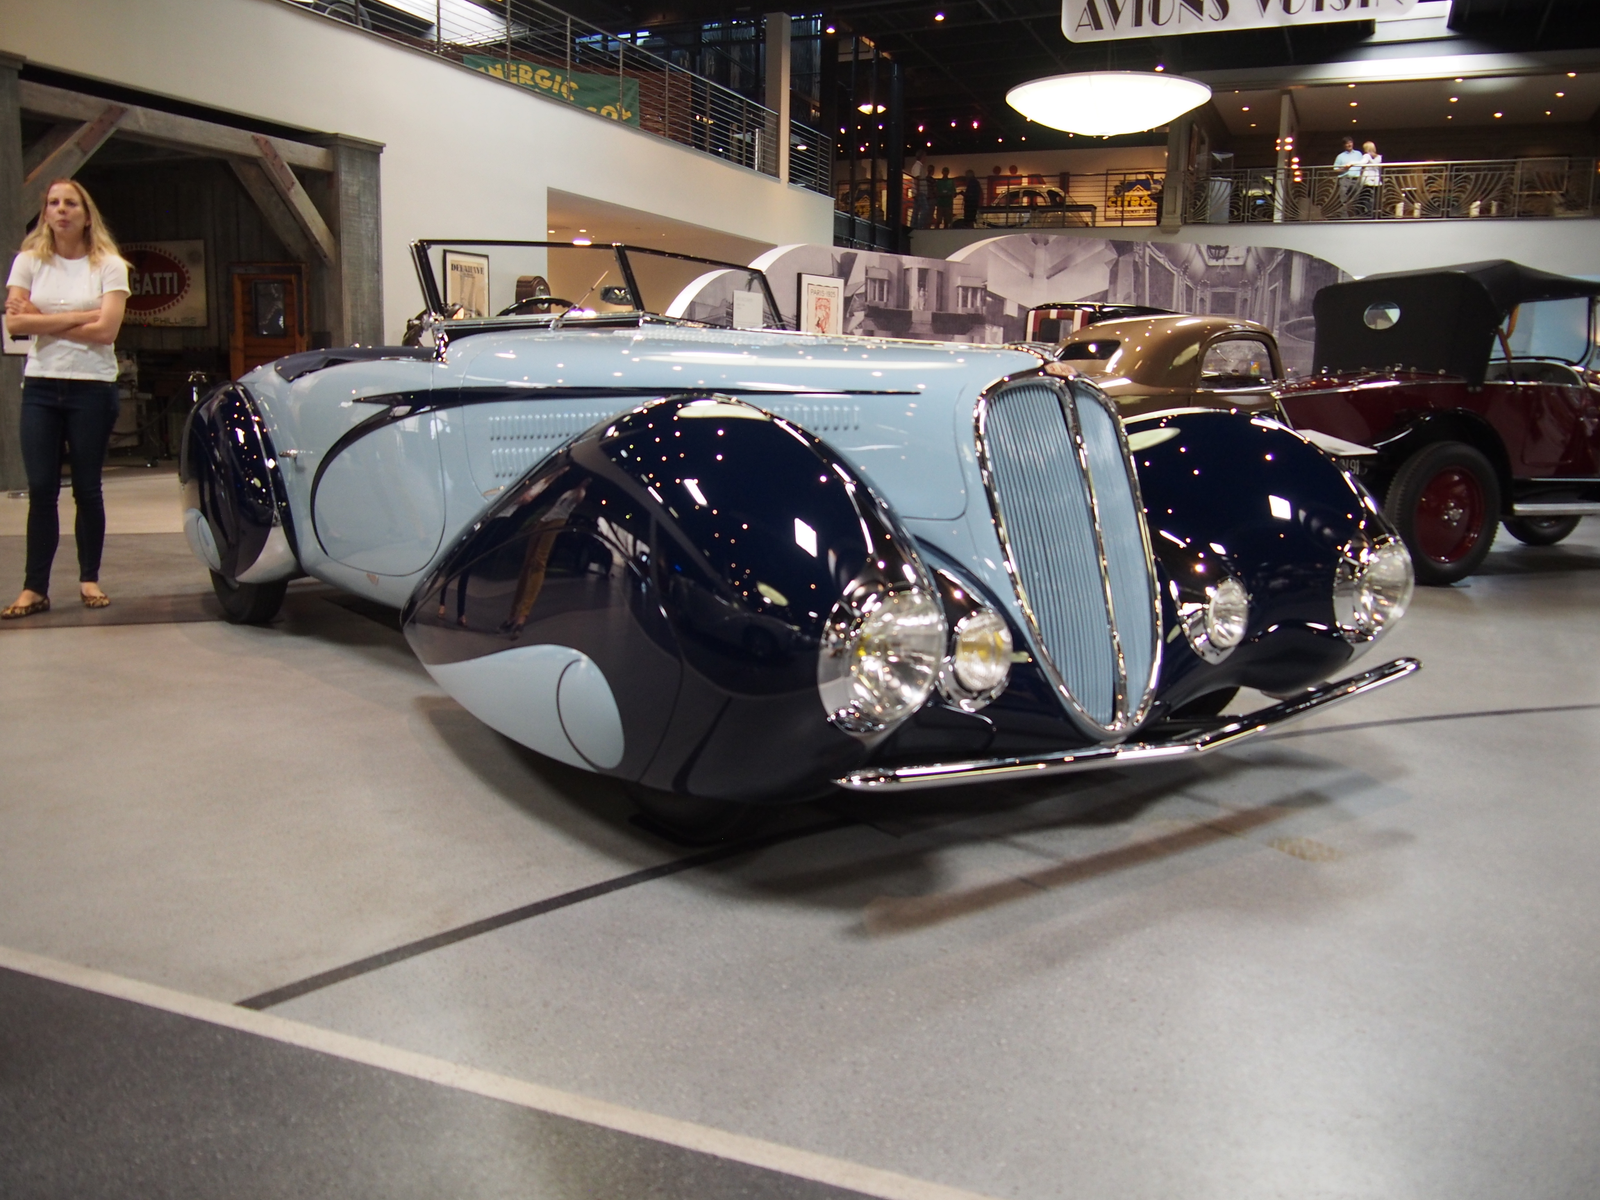 1937 Delahaye Type 135 M Cabriolet with a stunning body by Figoni & Falaschi.